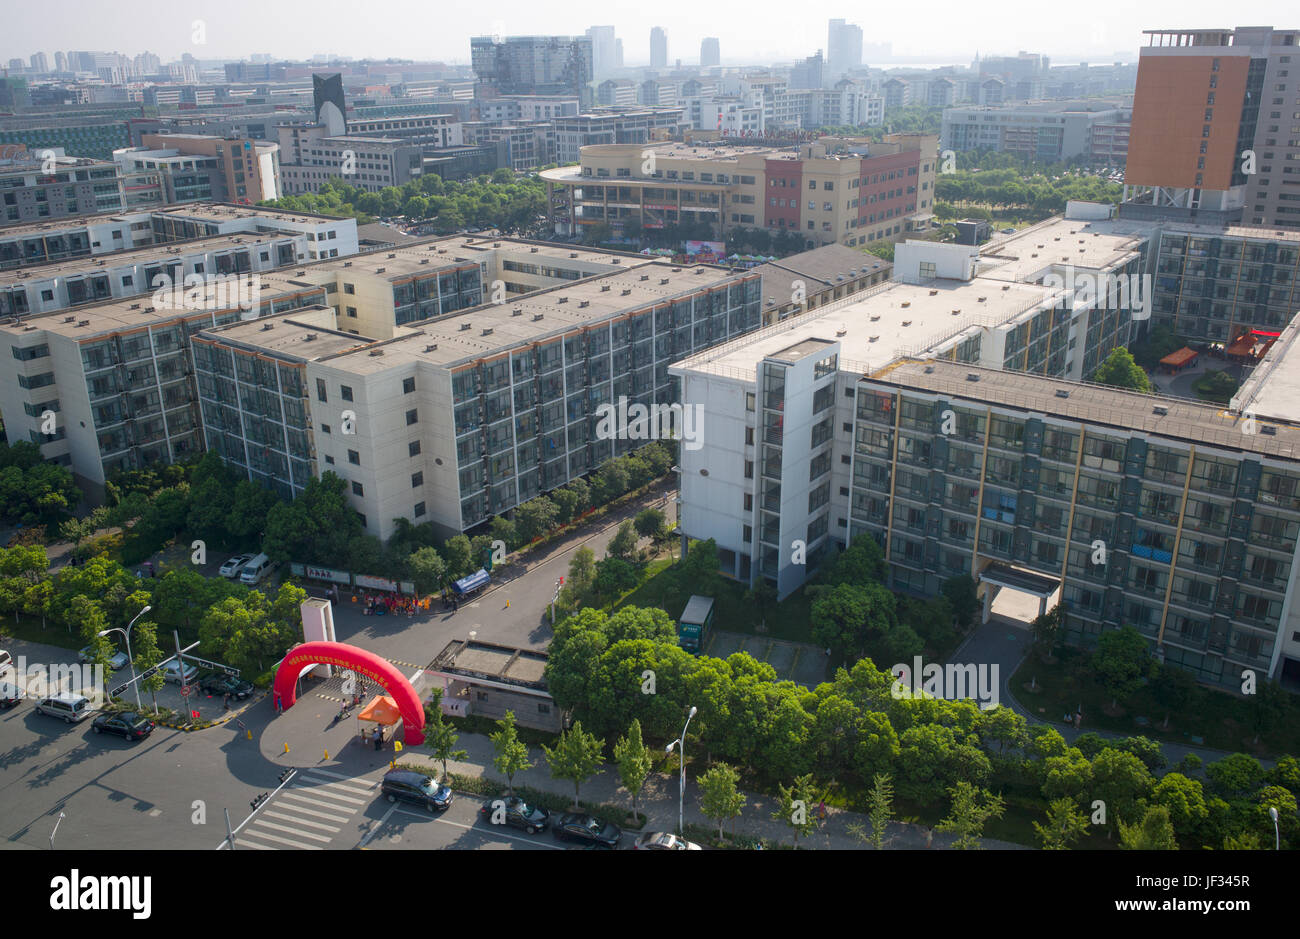 View over student dormitory blocks with inflatable arch during student registration, Dushu Lake Higher Education - Stock Image